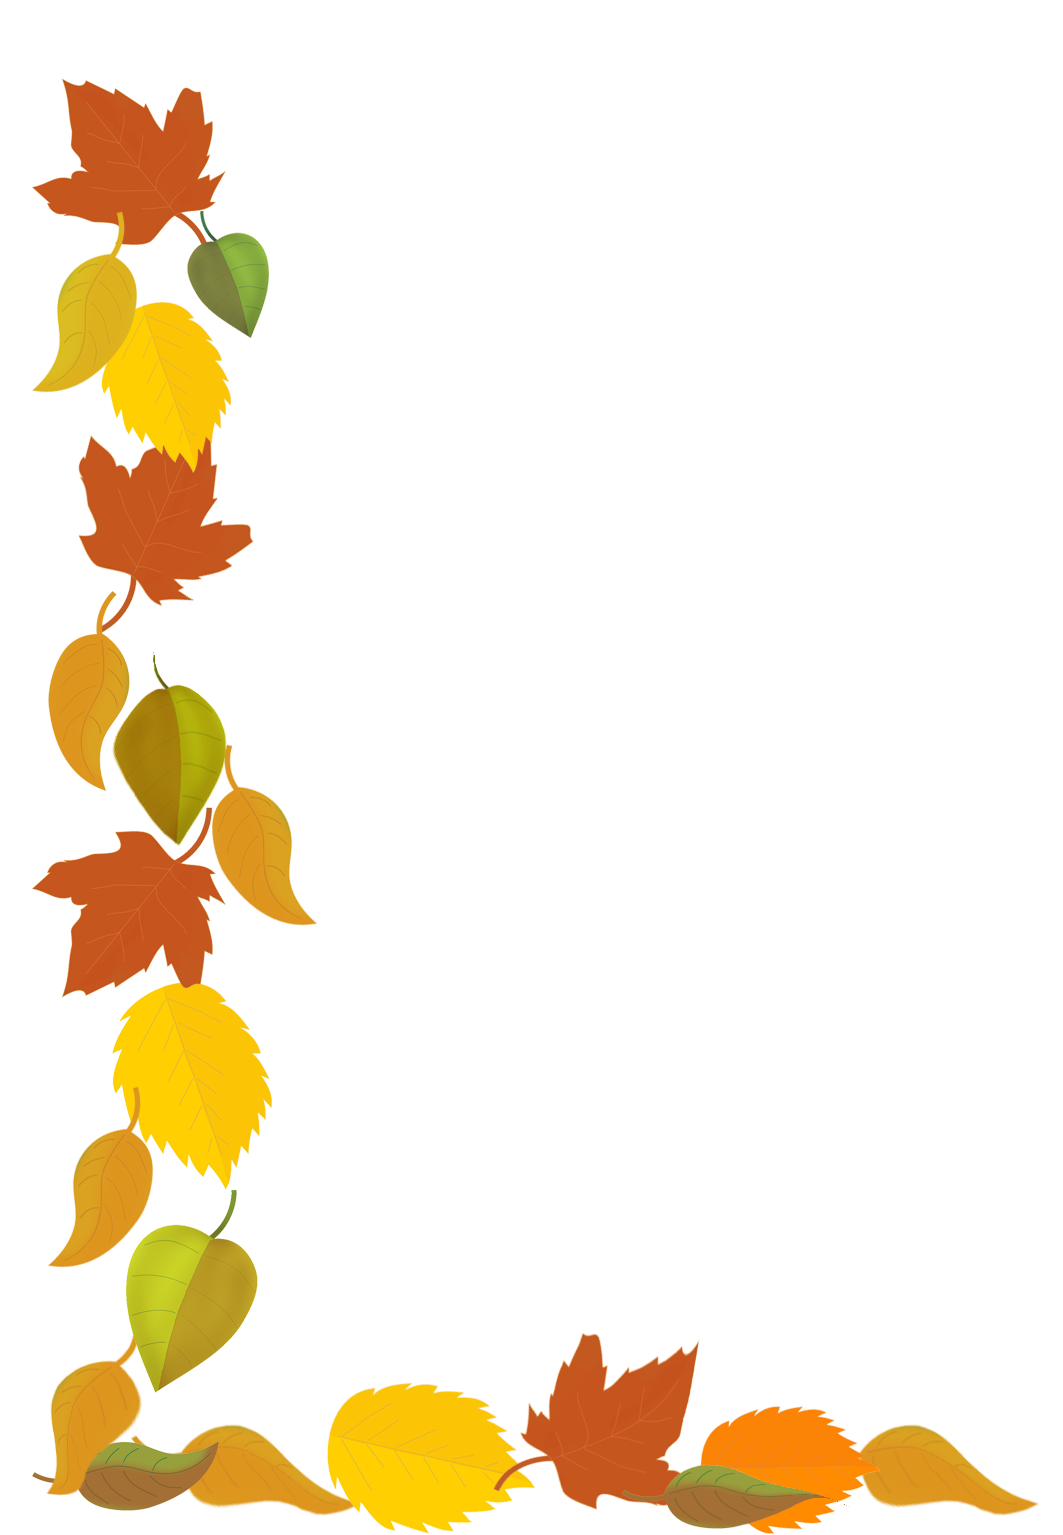 fall border with drawings of fall leaves